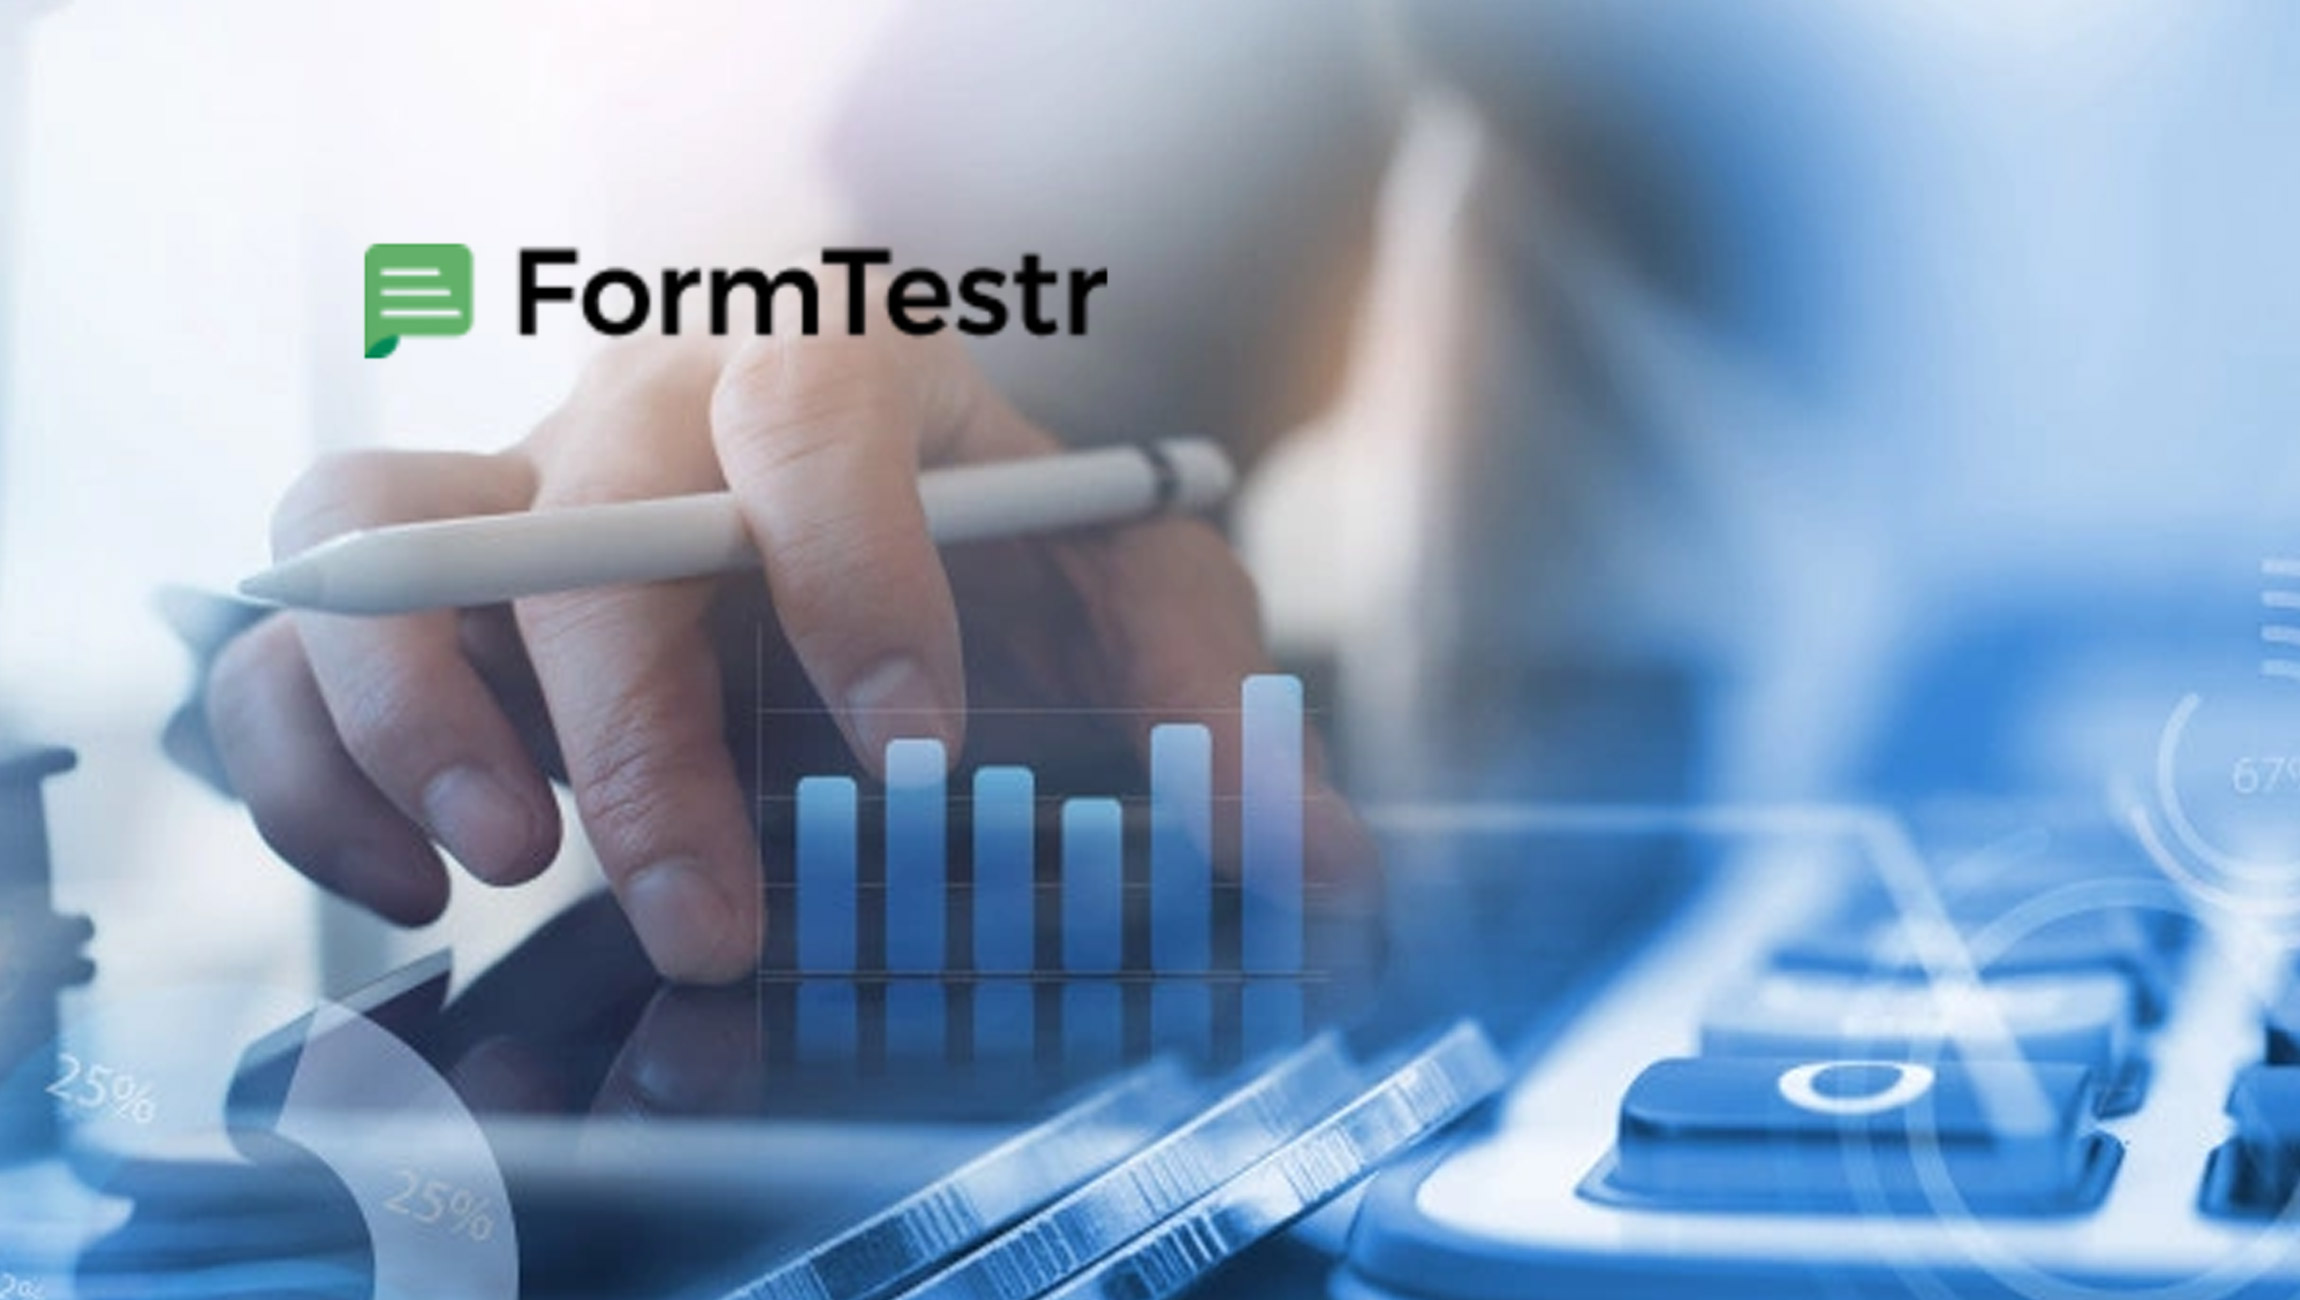 FormTestr Launches New Tool To Help Companies Boost Sales Leads And Grow Revenue